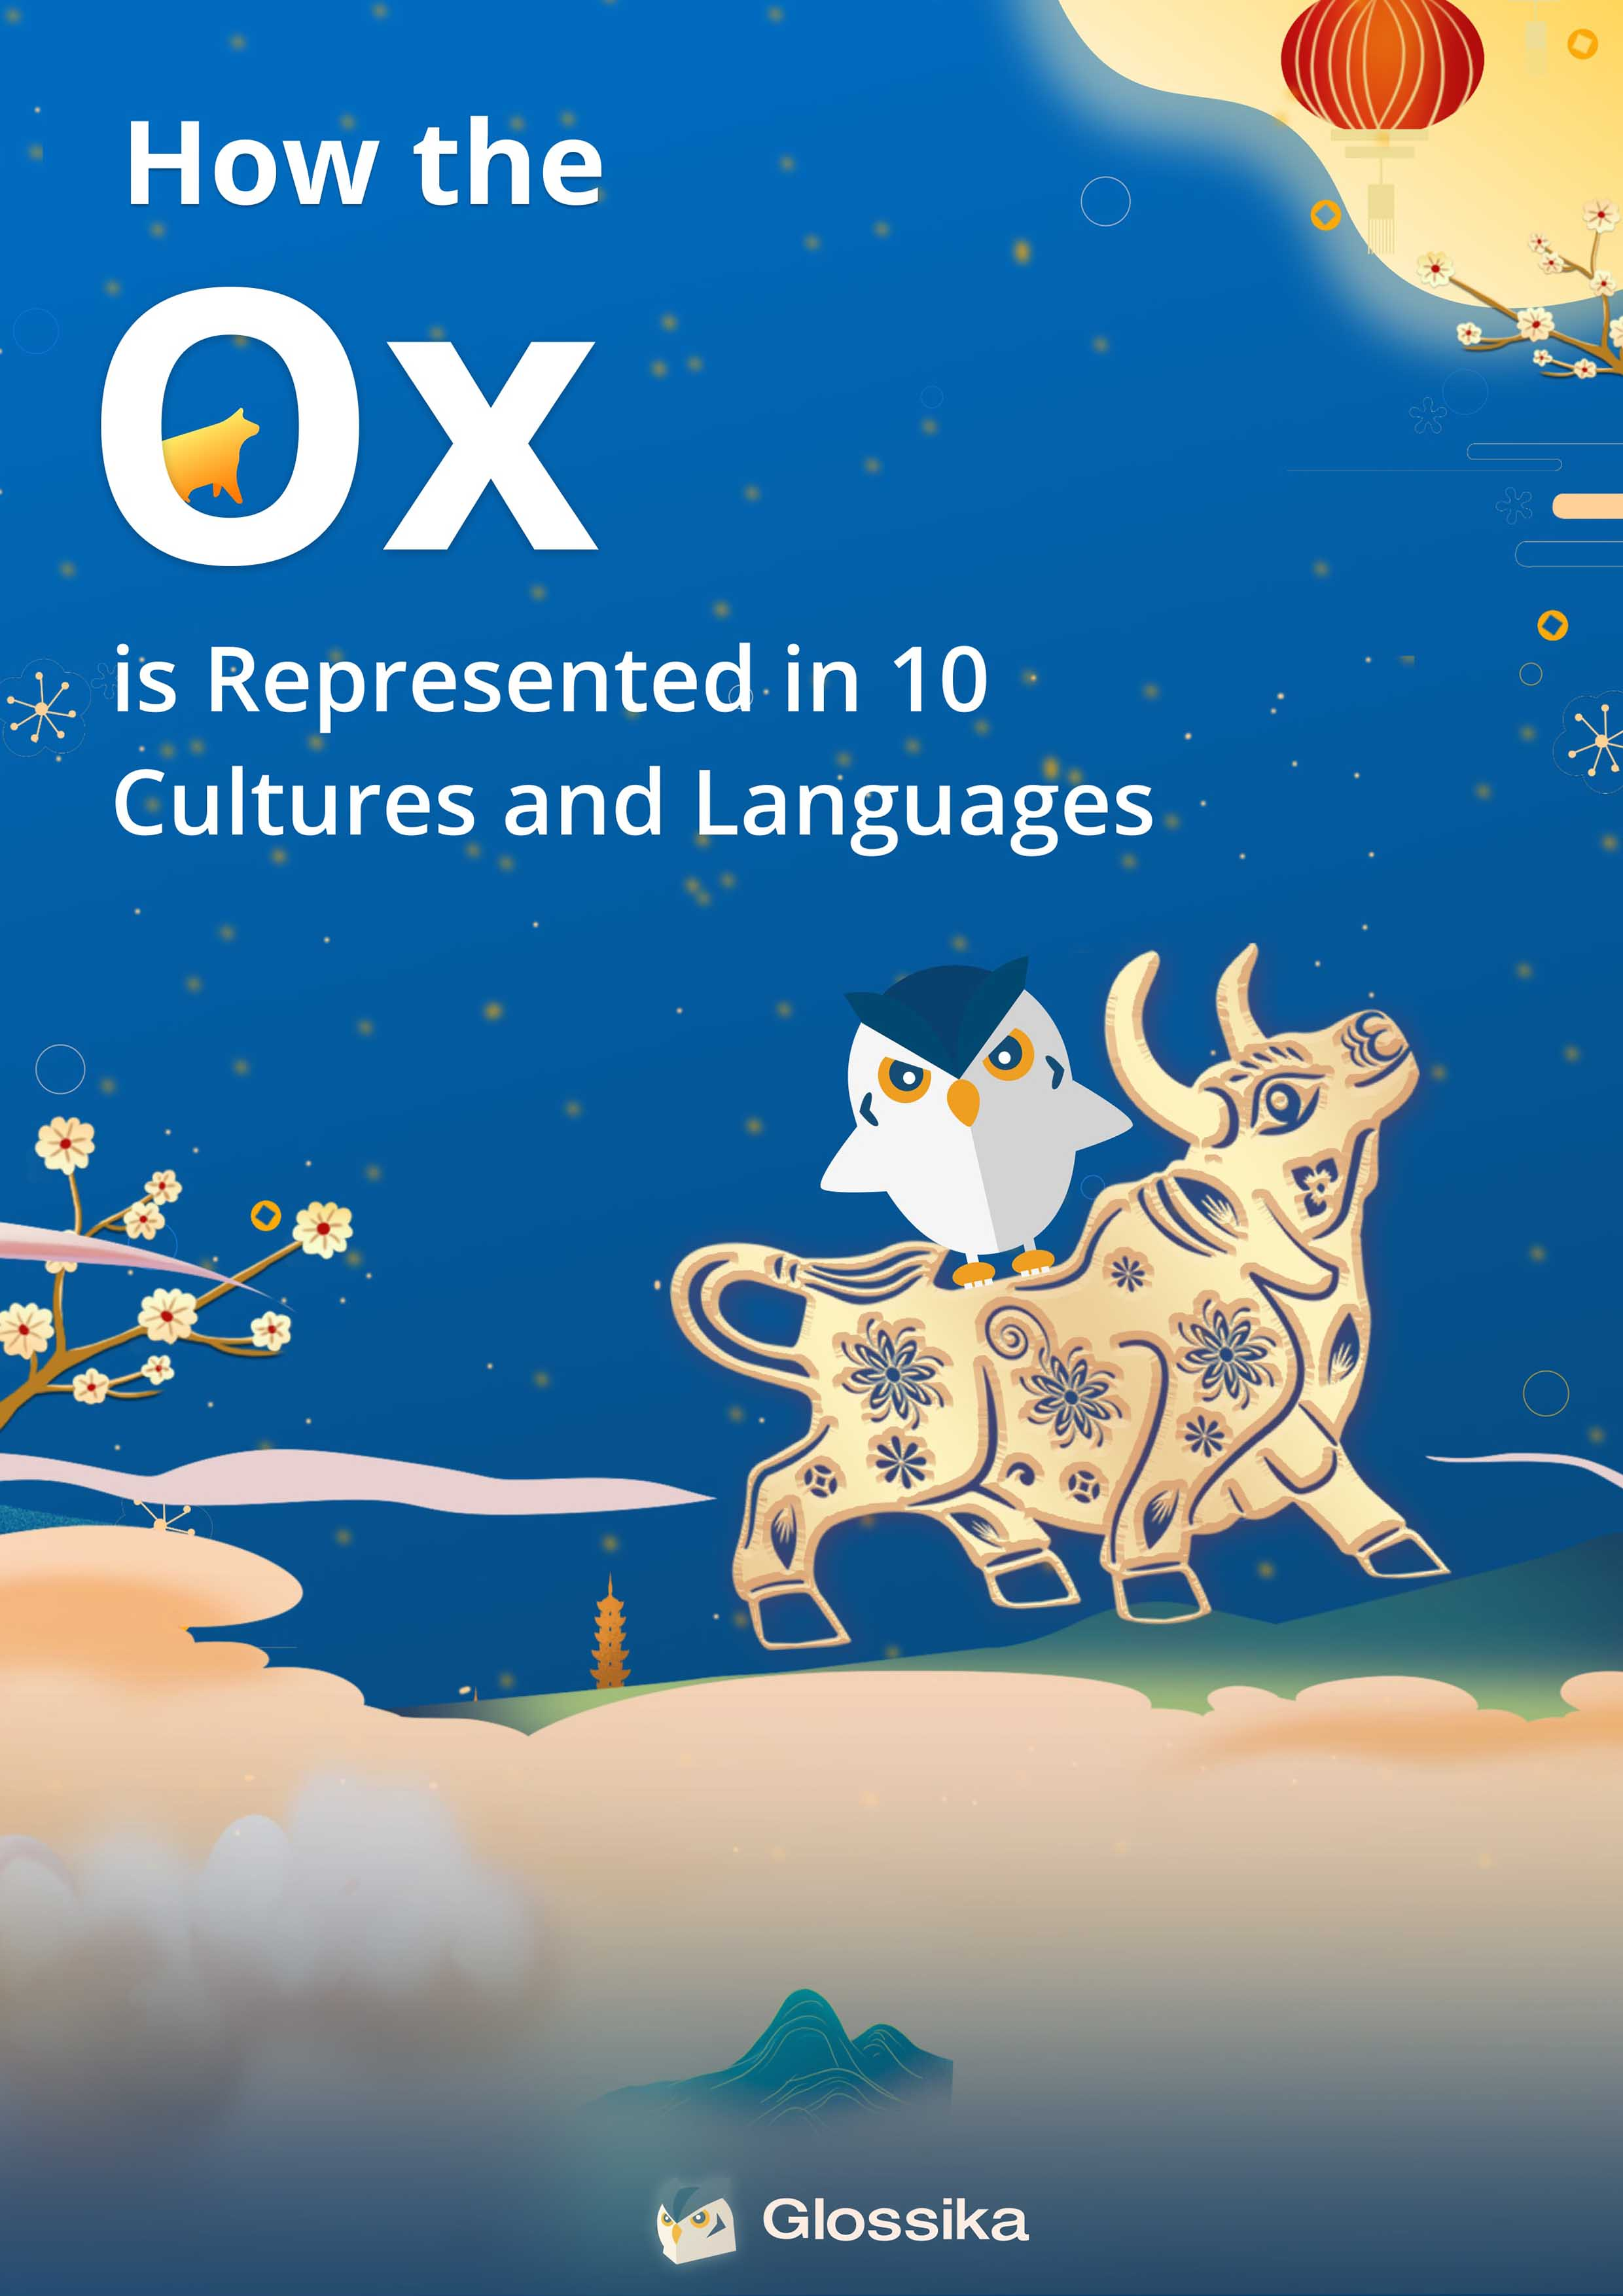 How the Ox is Represented in 10 Cultures and Languages